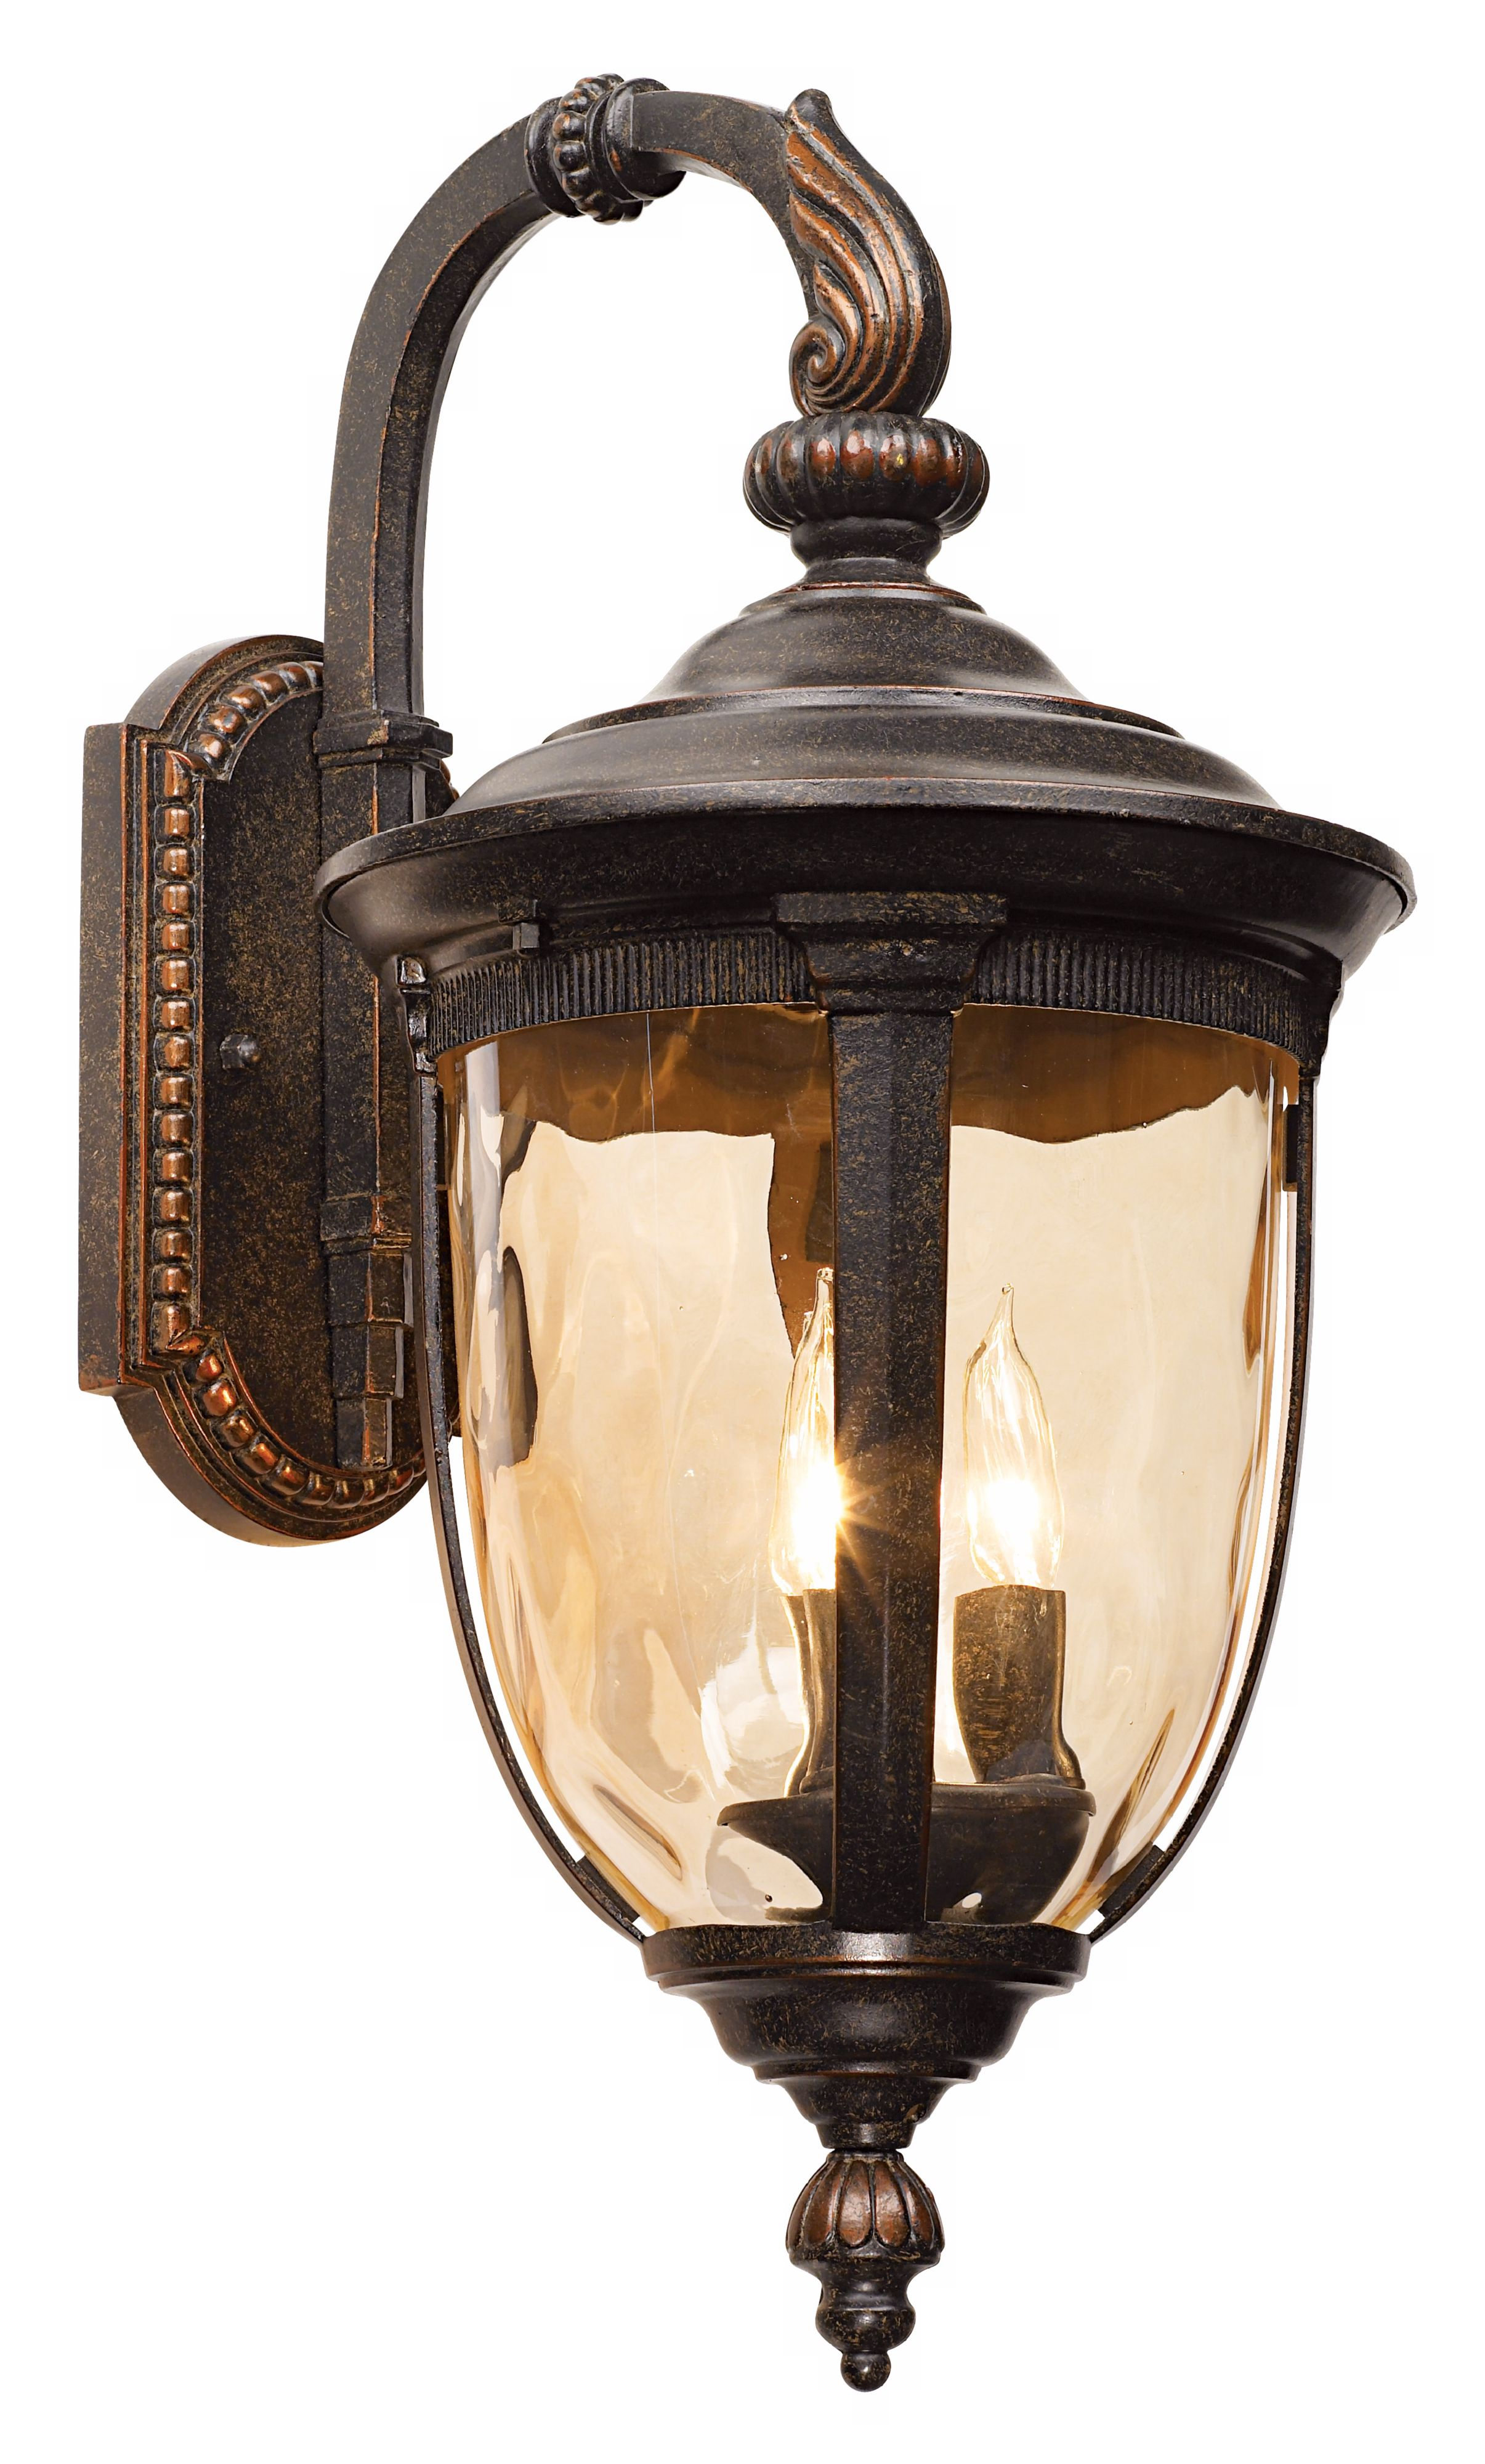 John timberland vintage outdoor wall light fixture bronze metal 20 1 2 champagne hammered glass for exterior house porch patio walmart com